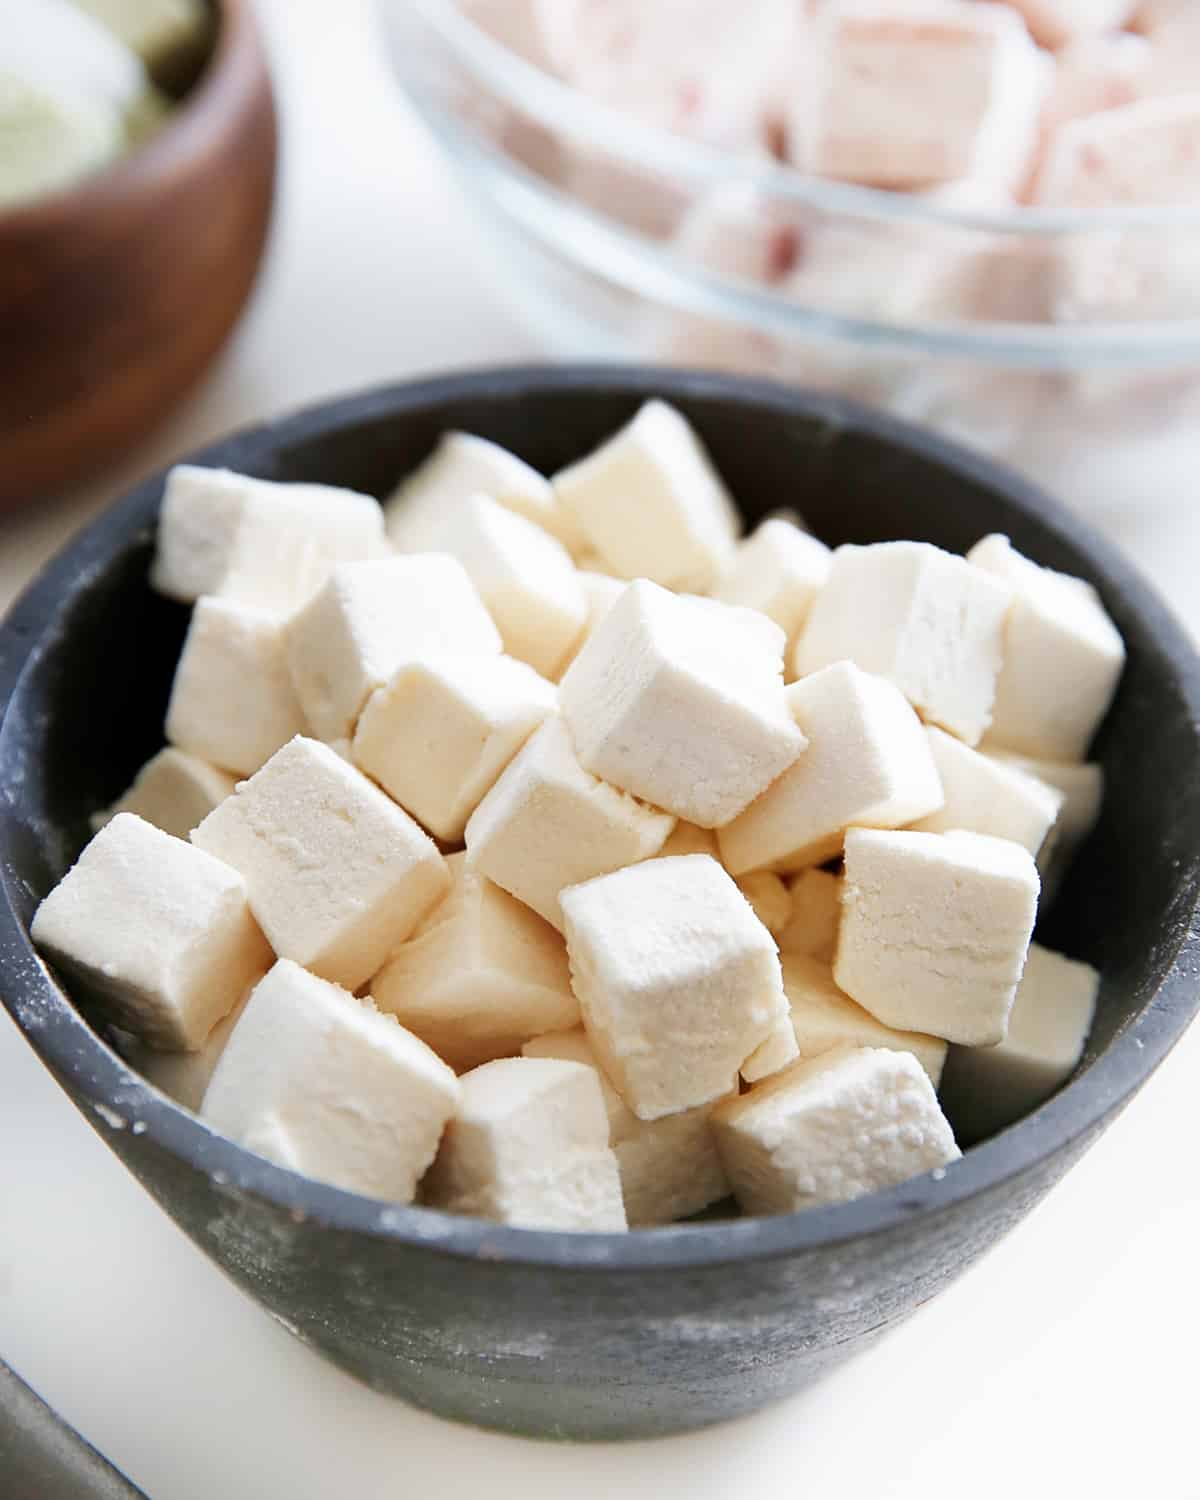 Cubes of Paleo Marshmallows